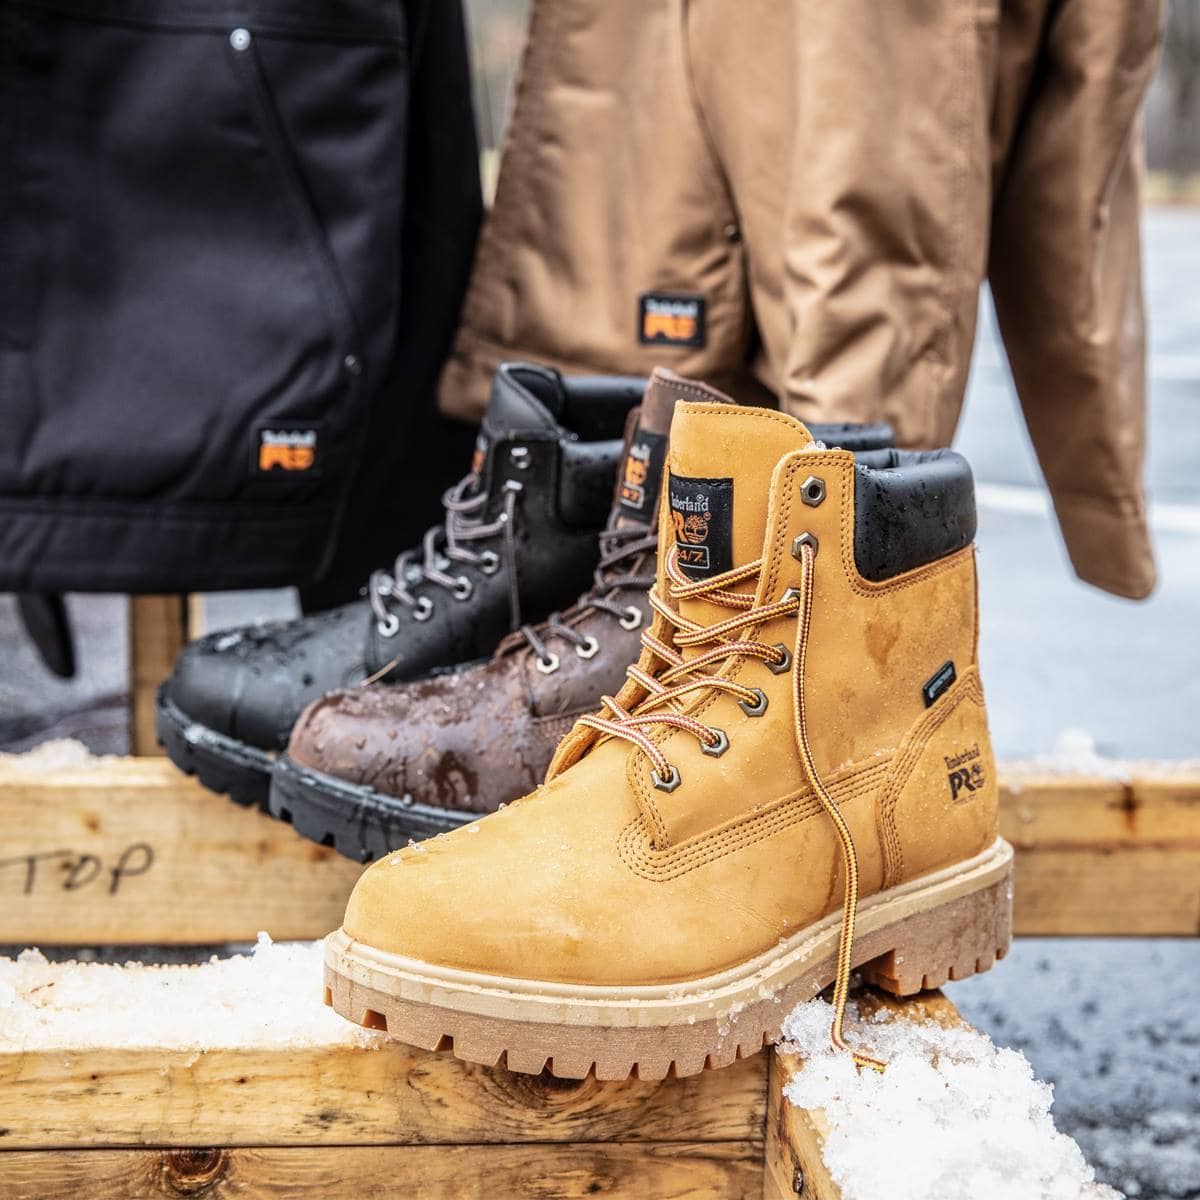 Timberland's waterproof Pro boots are adapted for work-site survival